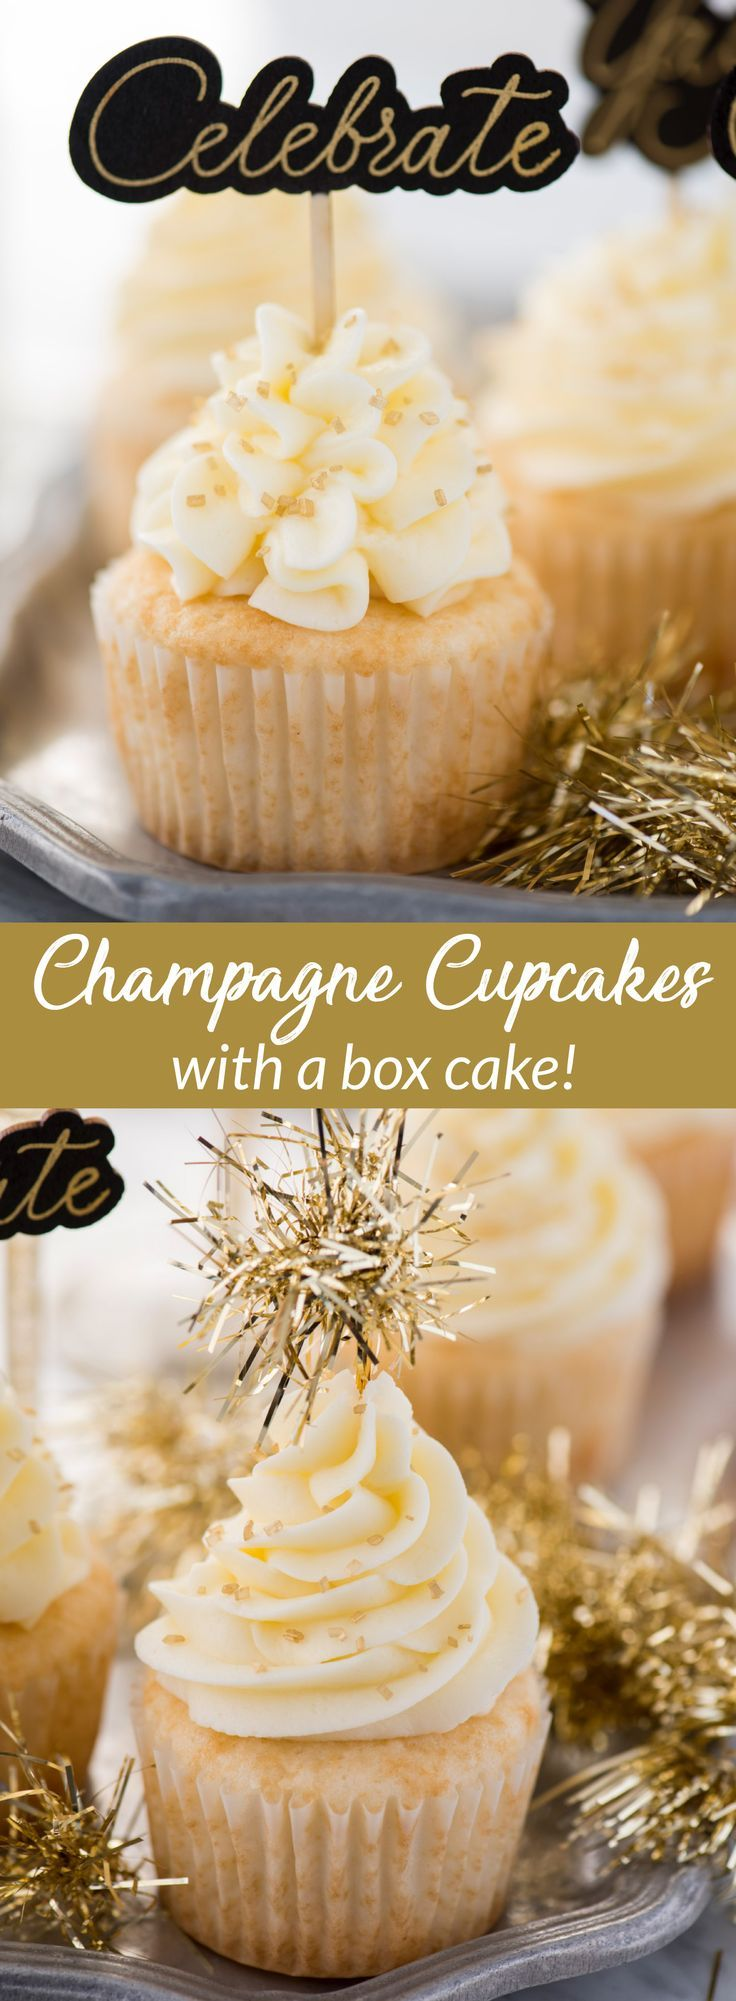 Easy Champagne Cupcakes | The First Year